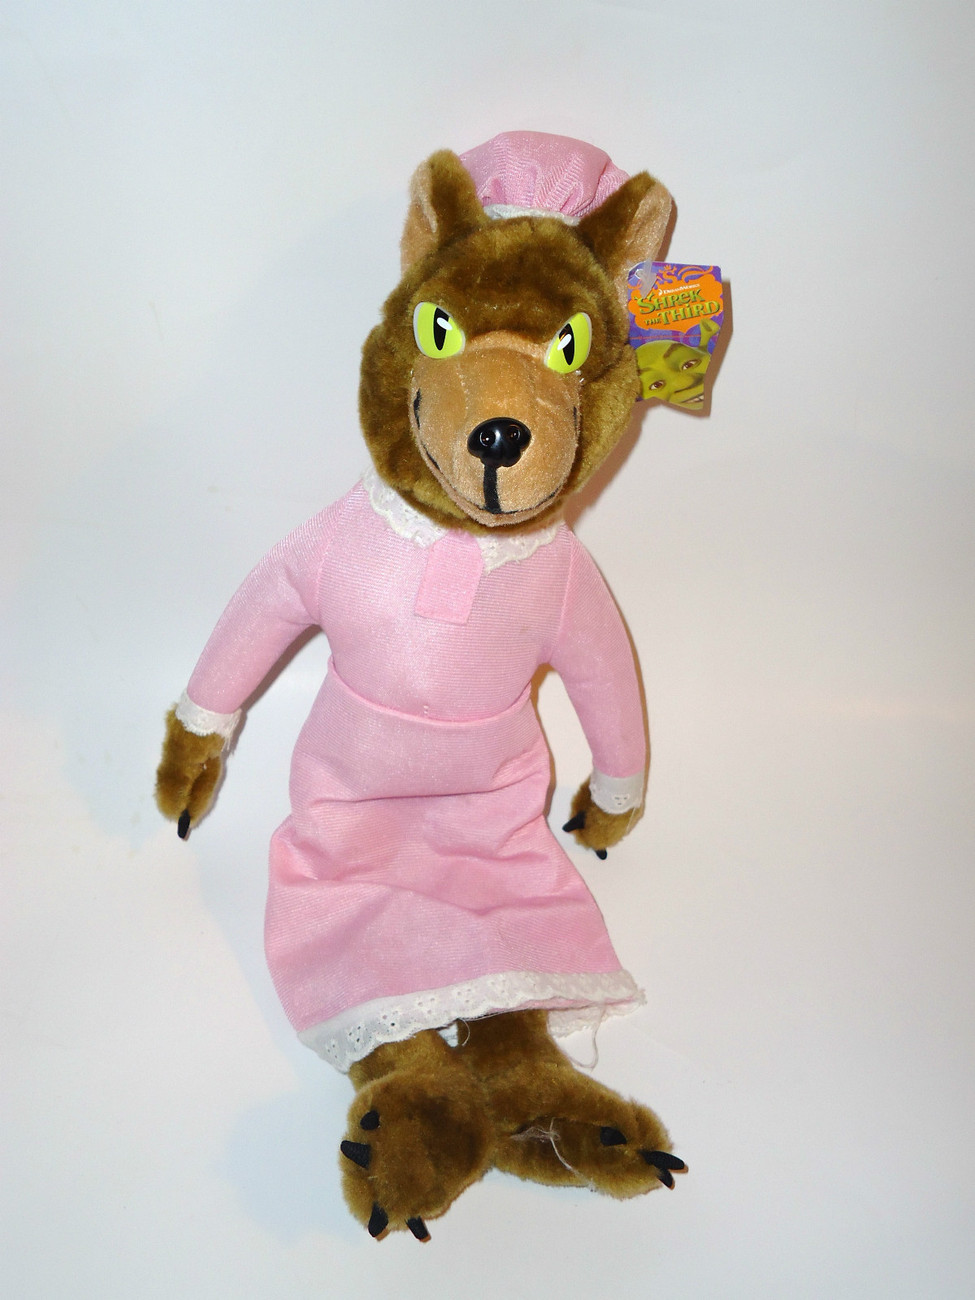 Shrek Big Bad Wolf Pink Grandma Outfit Plush Stuffed Animal